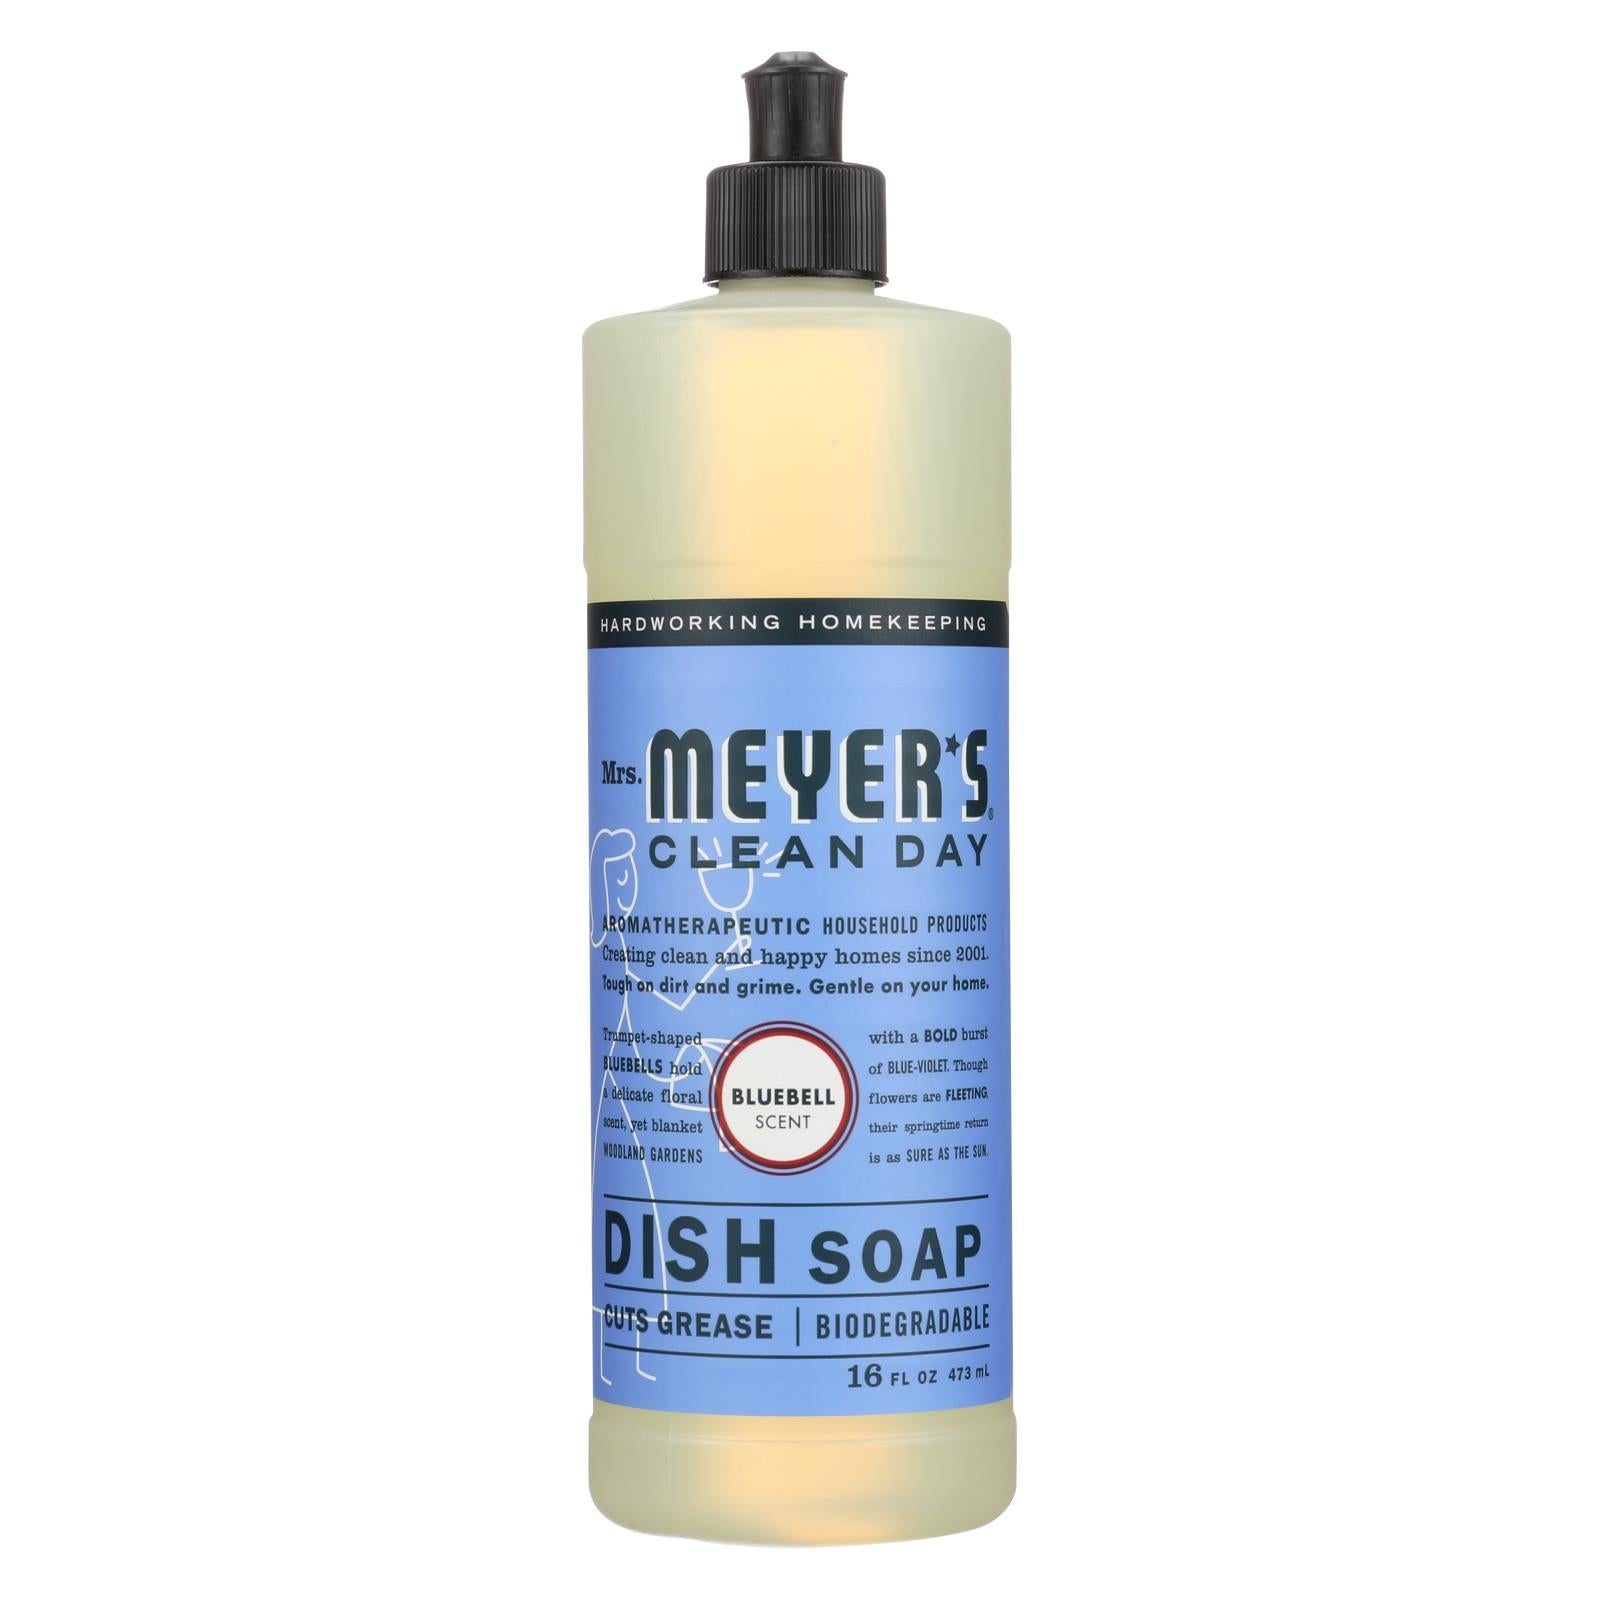 Buy Mrs. Meyer's Clean Day - Liquid Dish Soap - Bluebell - 16 oz - Dishwashing from Veroeco.com